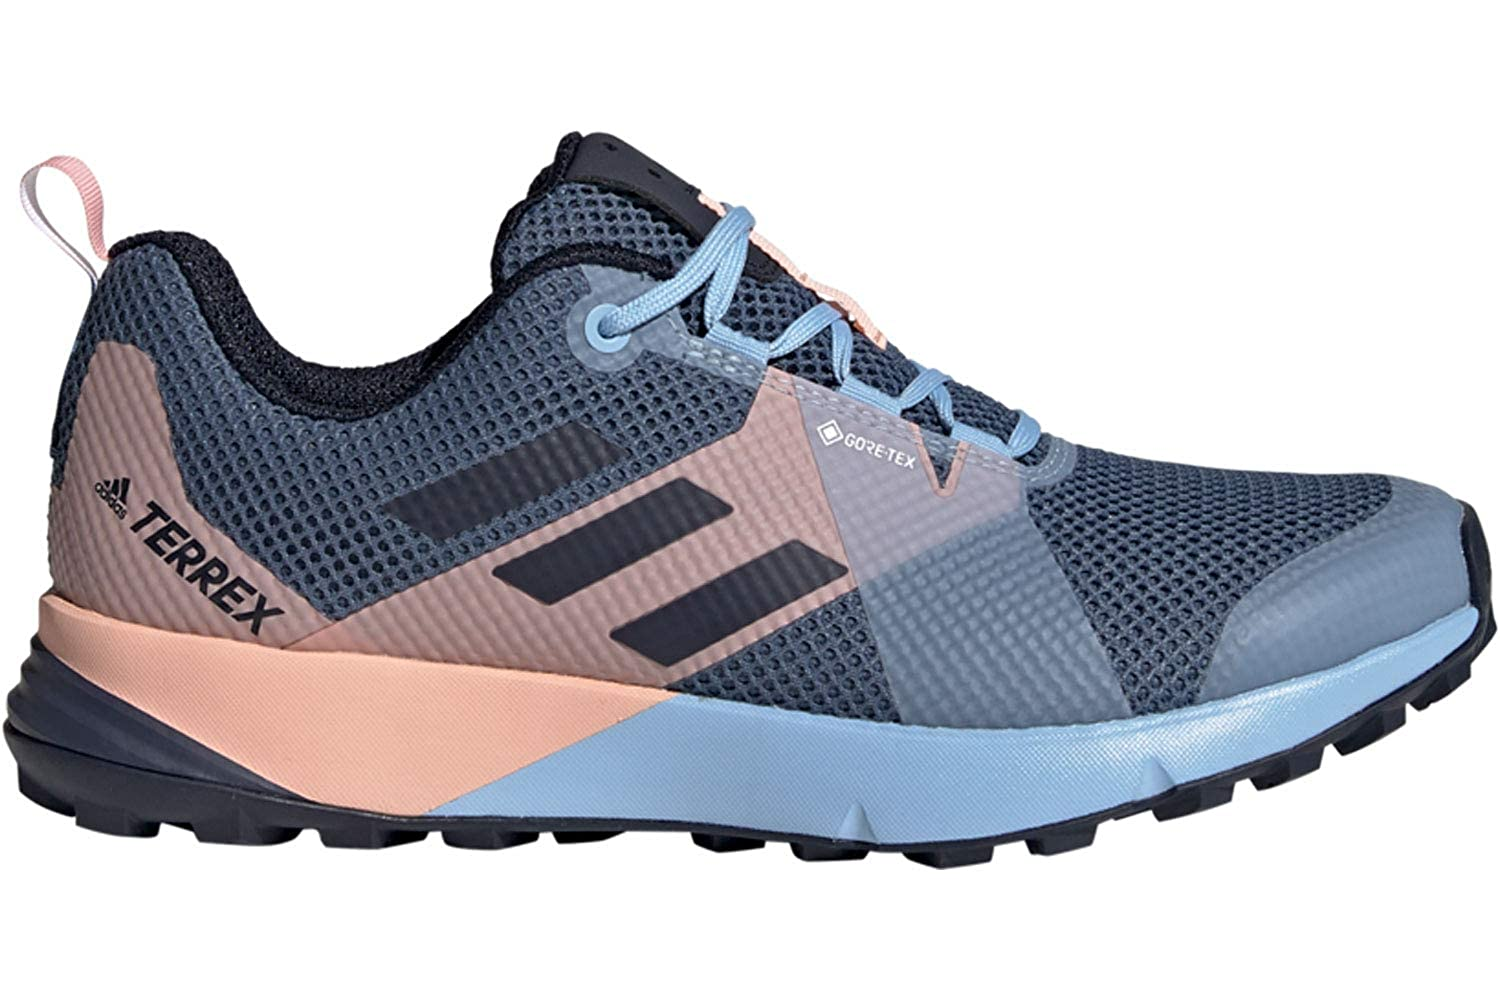 new collection the latest hot sales adidas Terrex Women Two GTX W Outdoor Schuh EF1436: adidas ...